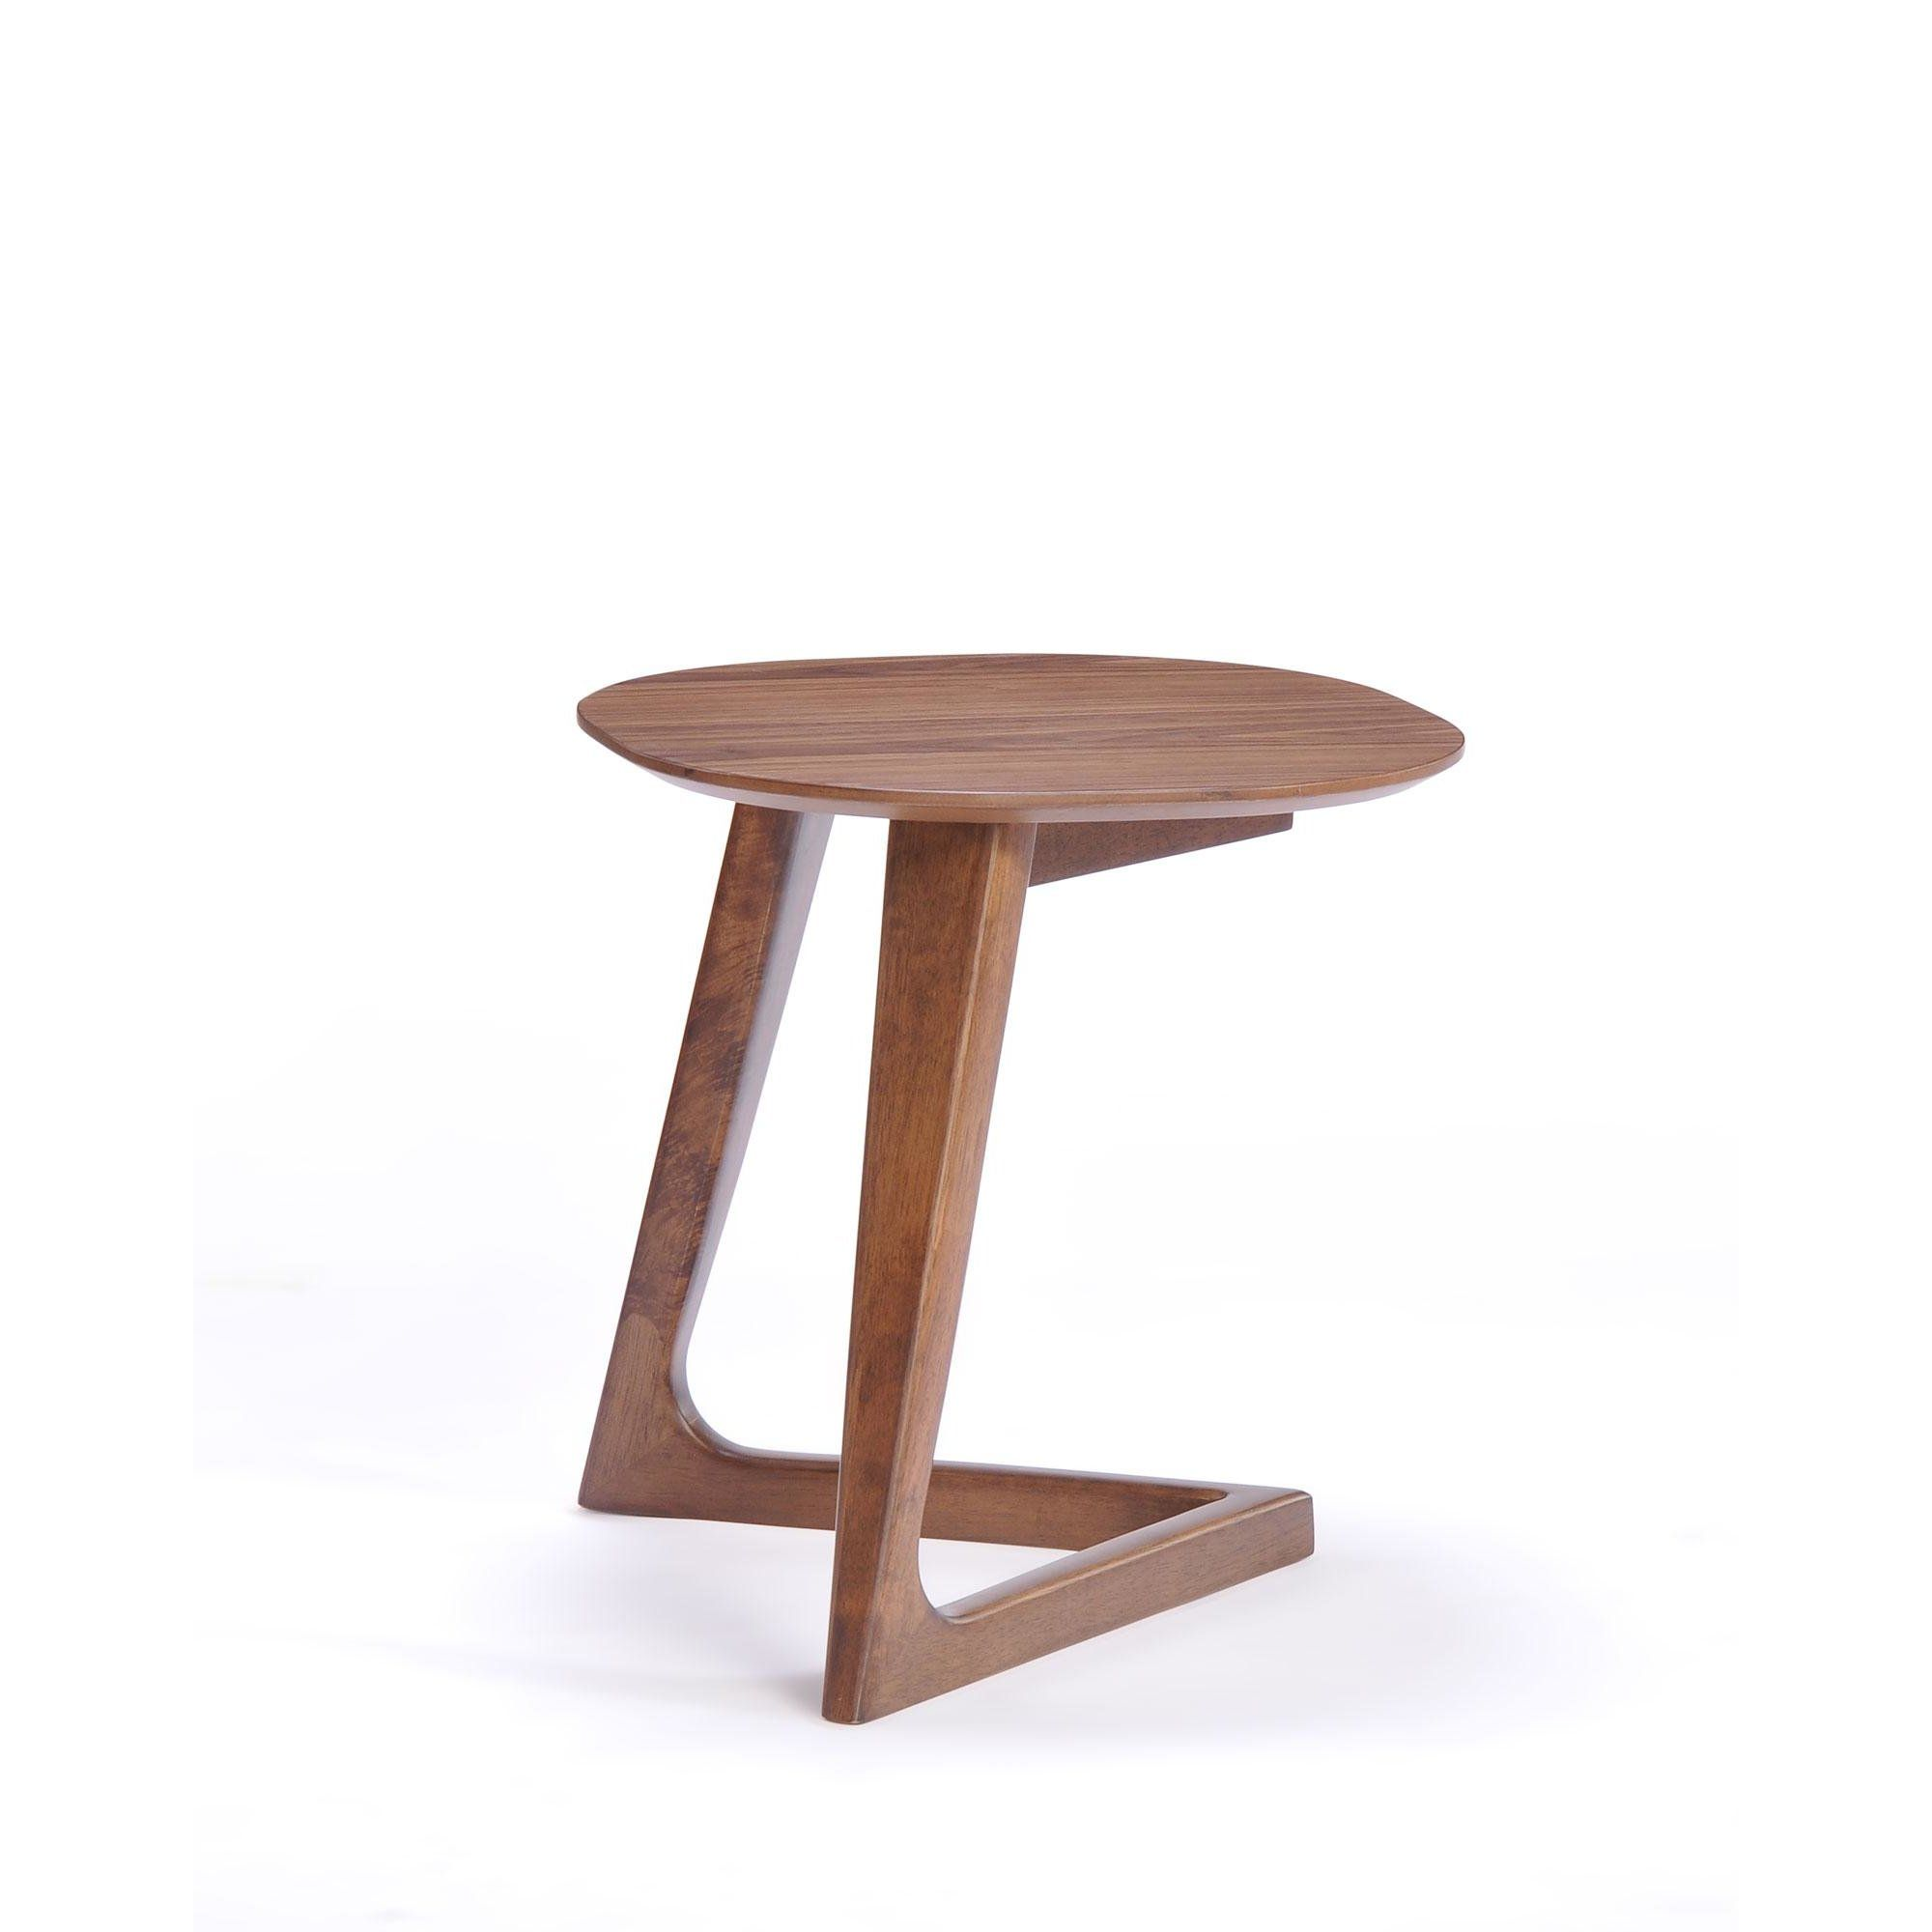 Sustainable Mid-Century Modern Wood Furniture Collection ...